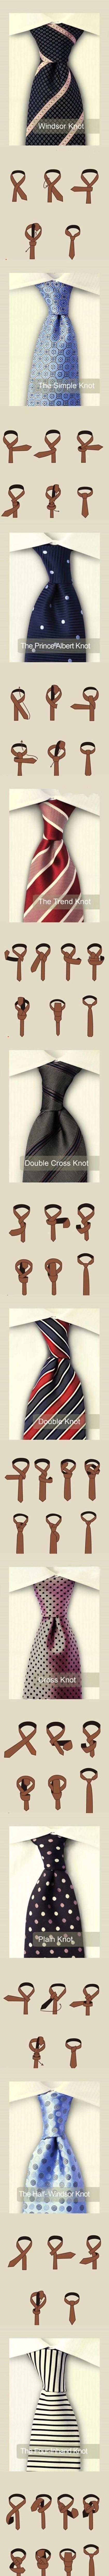 Windsor Knot Us Ladies Think This Is Very Classy How To Tie